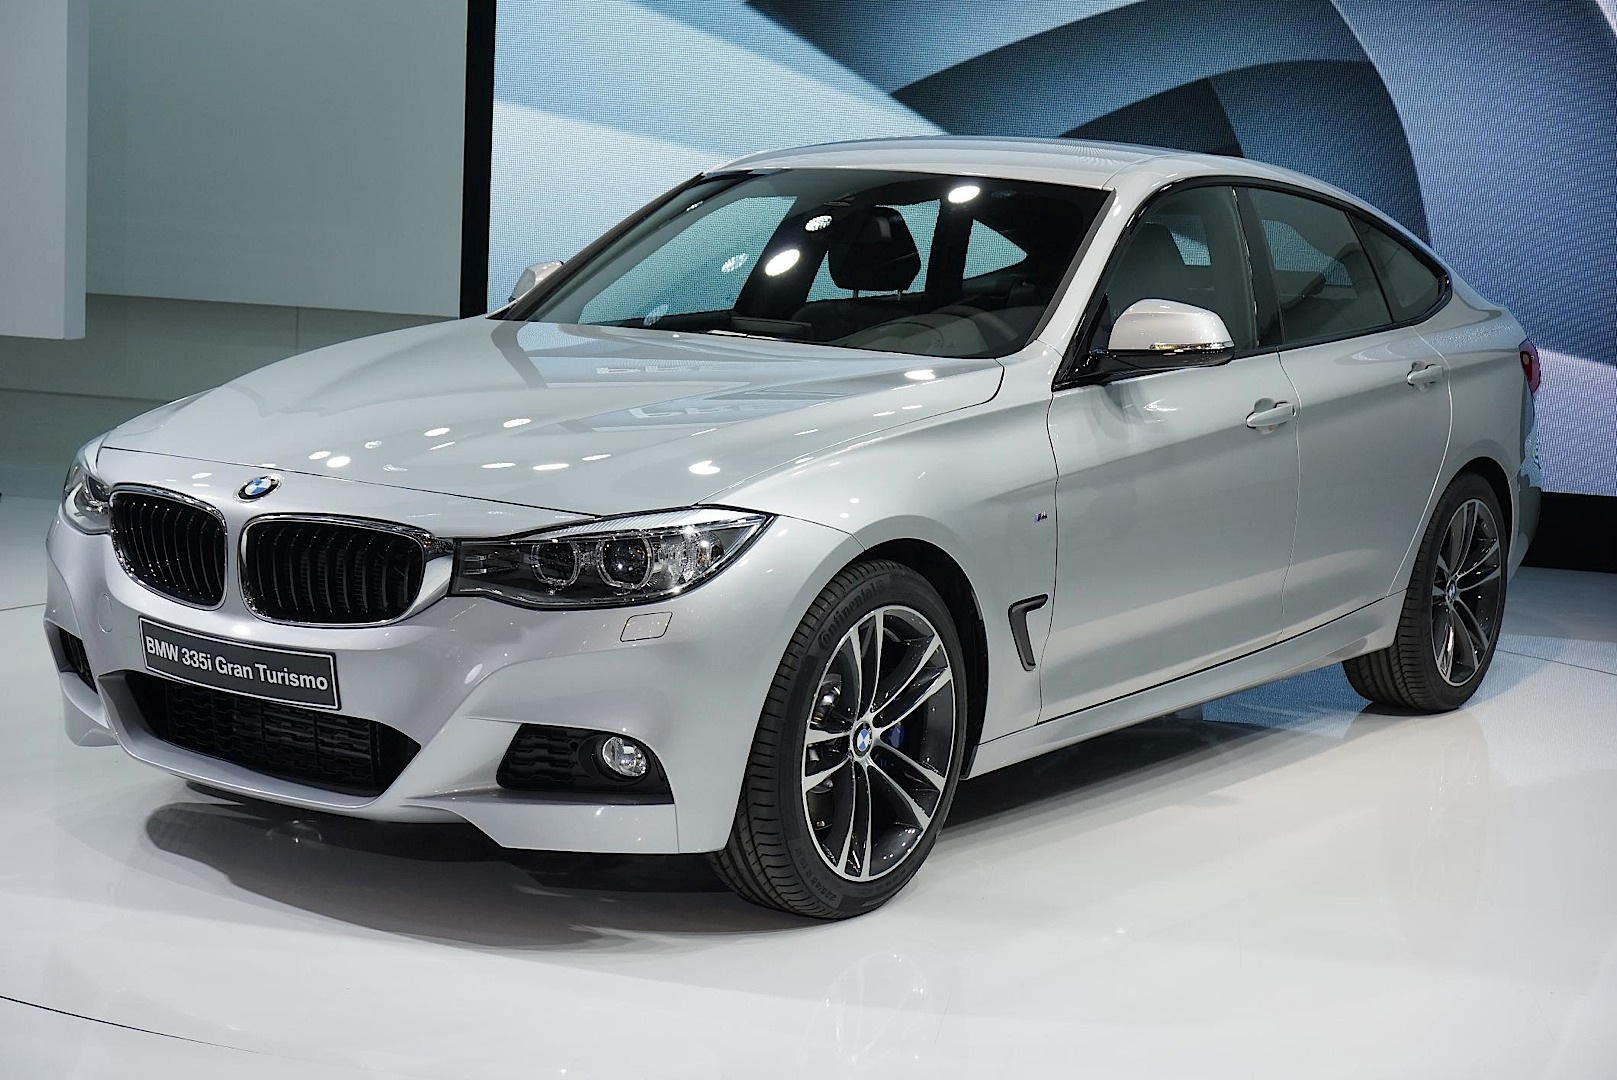 bmw f34 3 series gt at the geneva motor show autoevolution. Black Bedroom Furniture Sets. Home Design Ideas